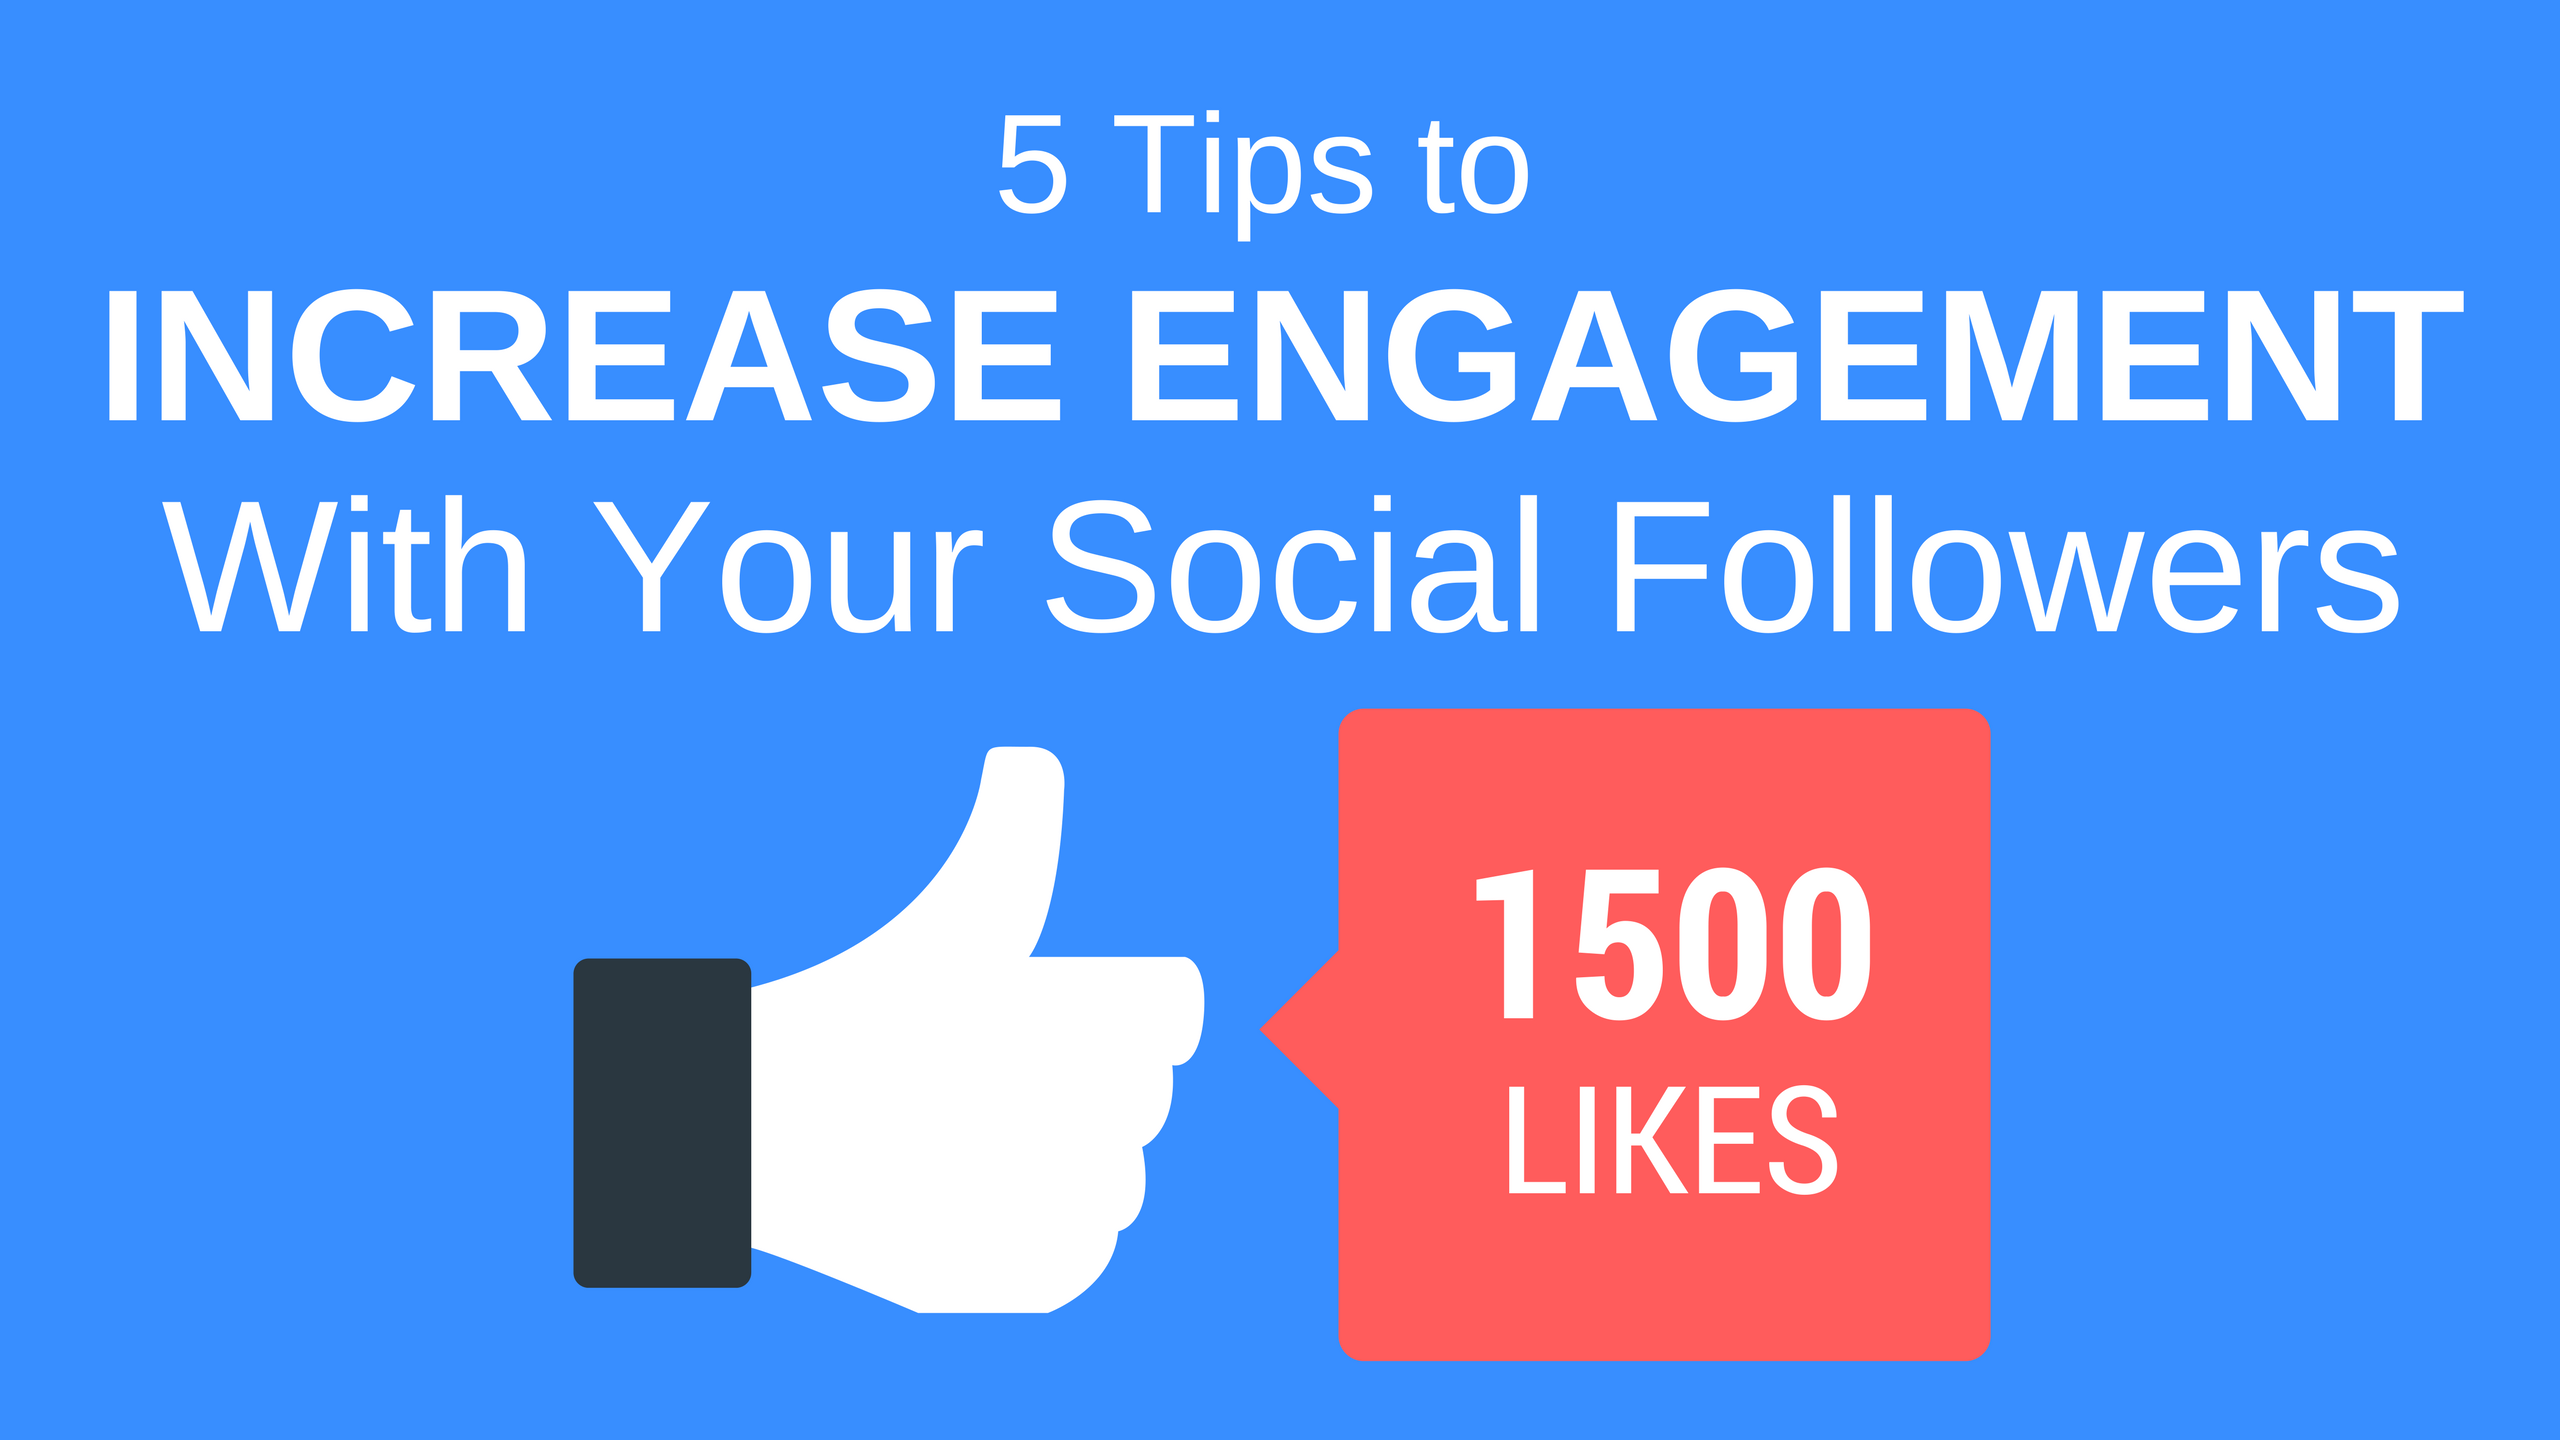 5 Tips to Increase Engagement with Your Social Followers